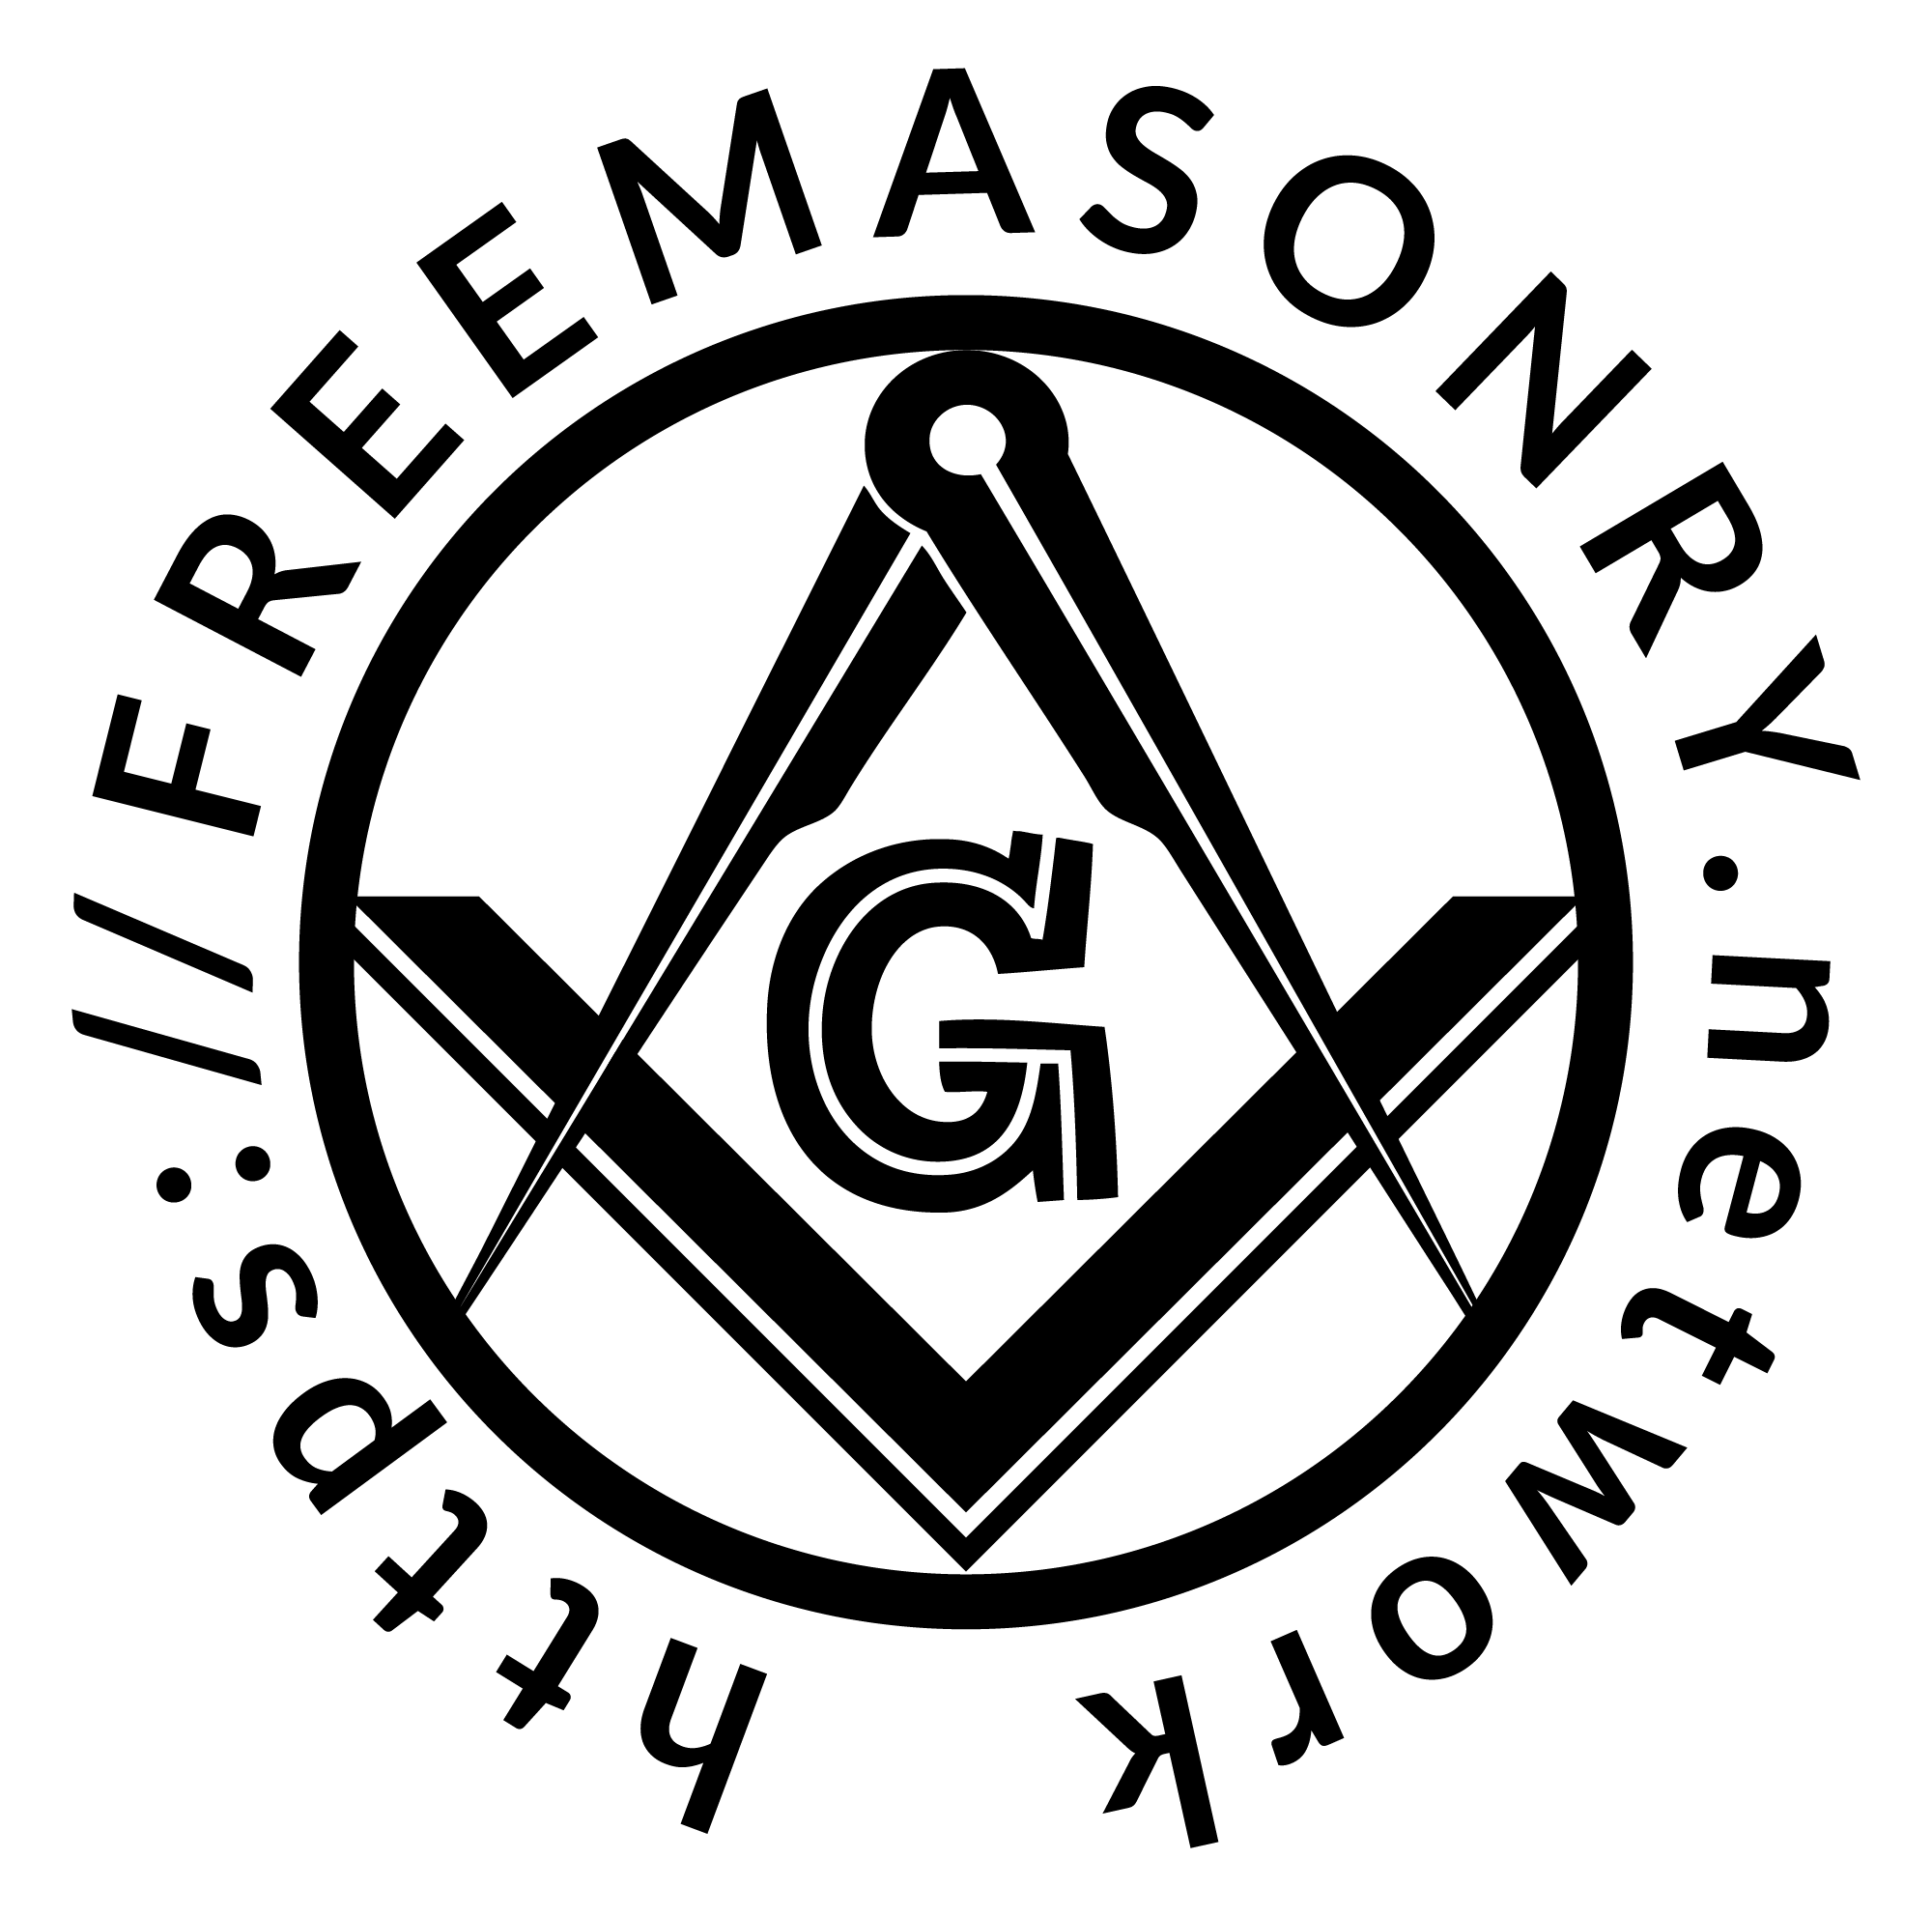 WHO ARE FREEMASONS?